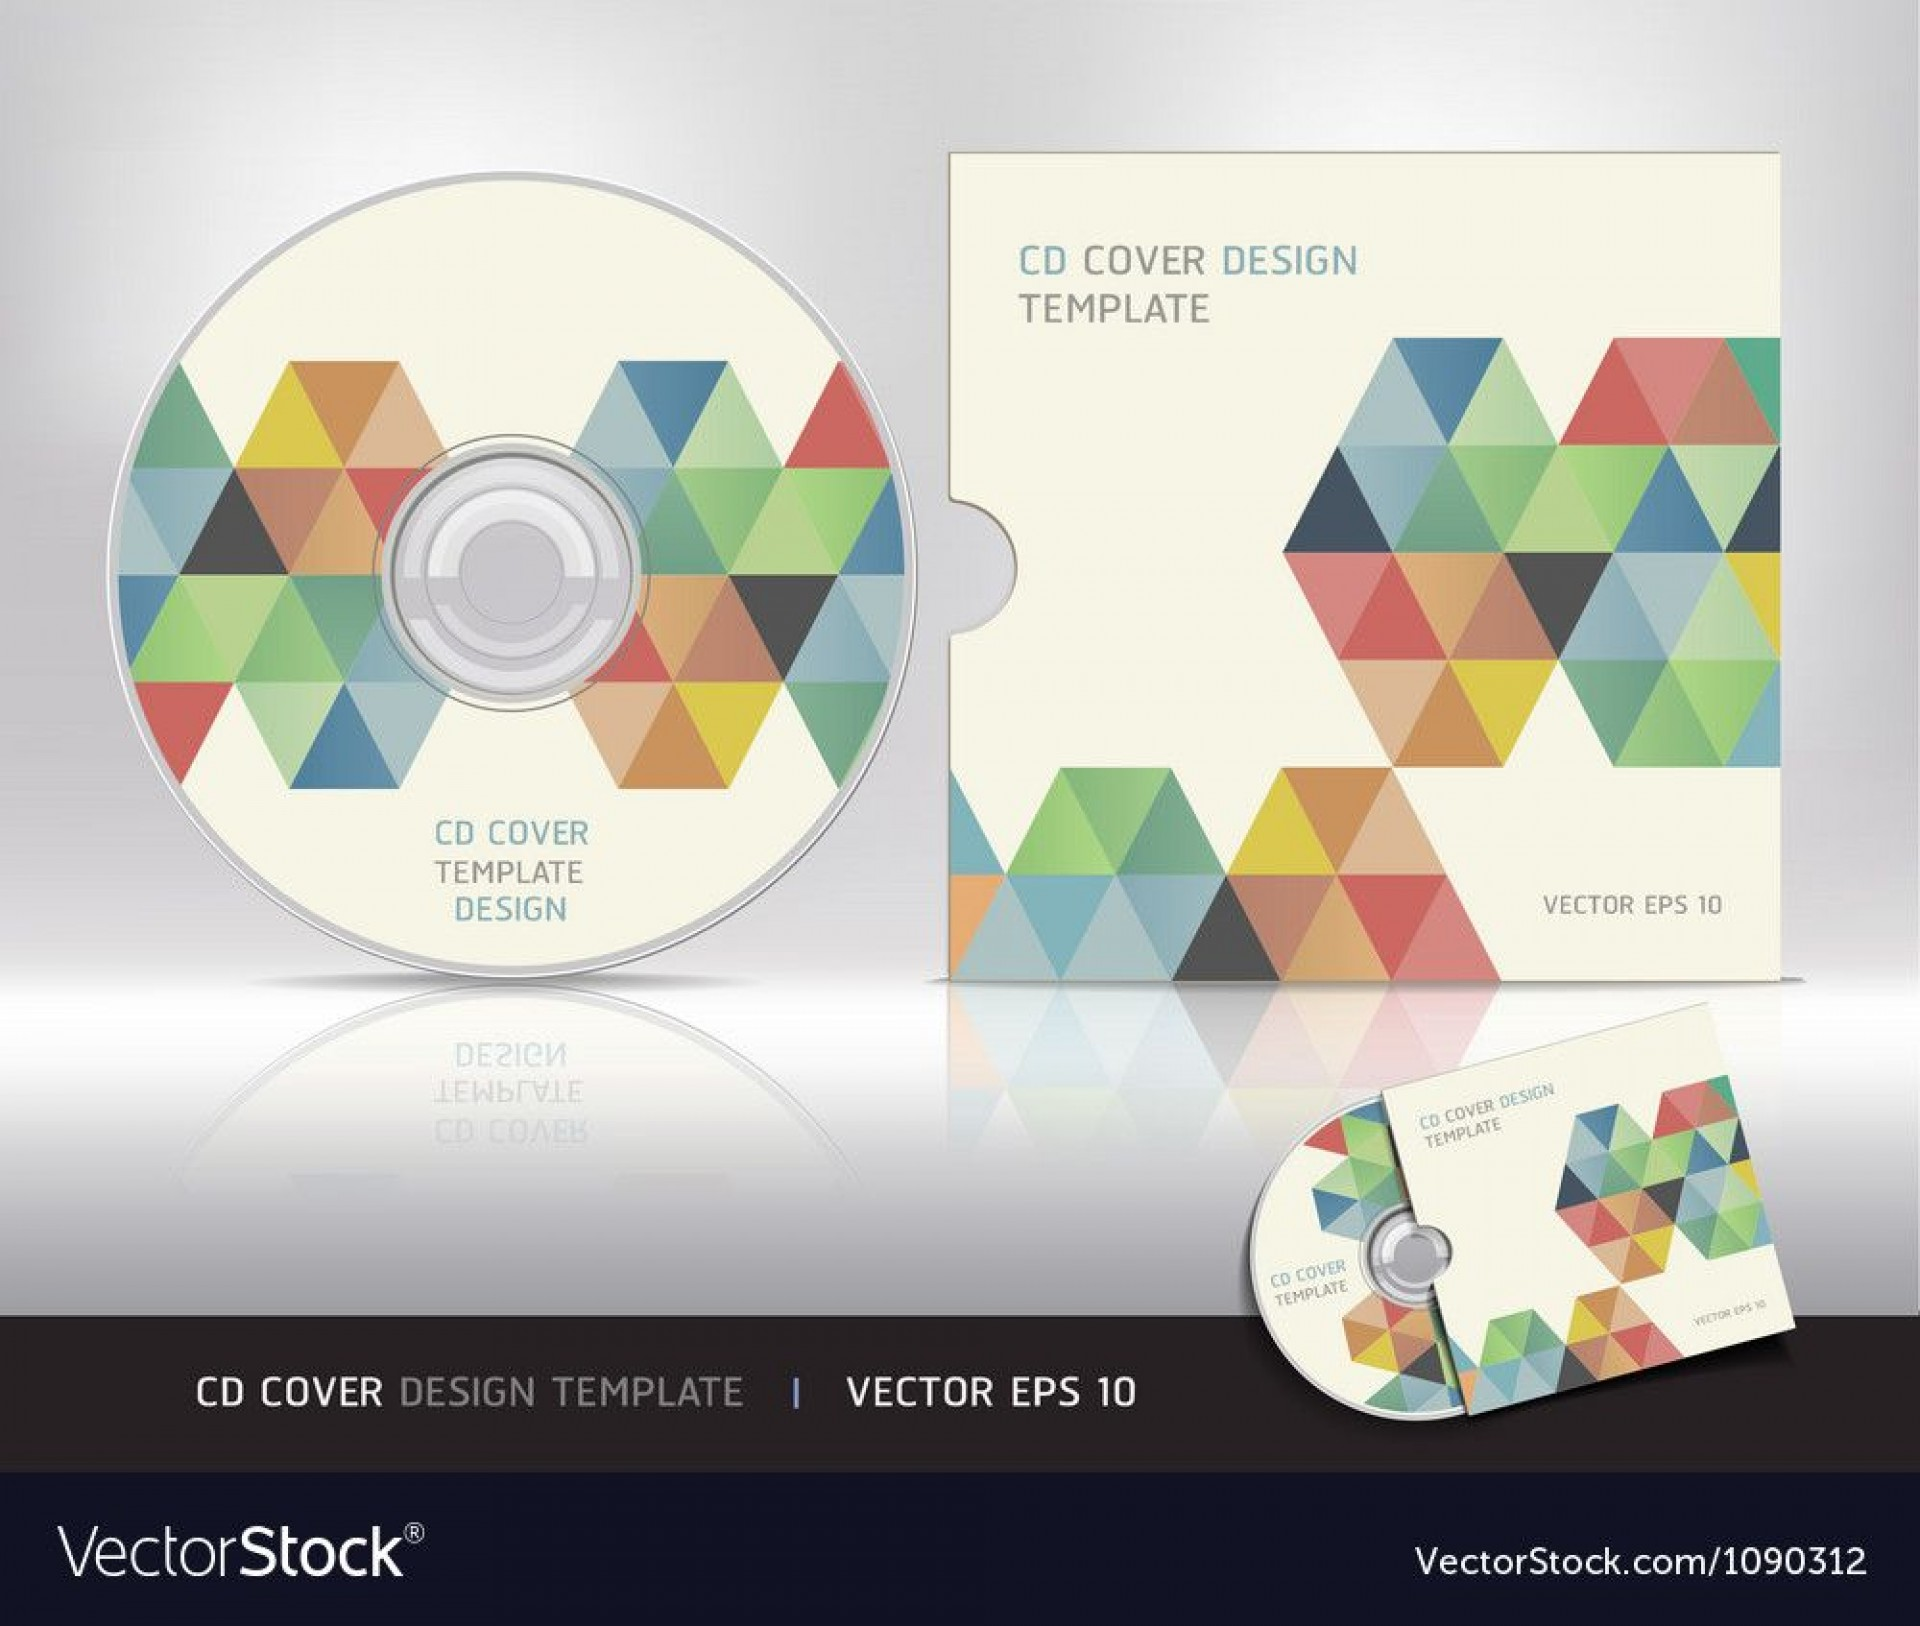 007 Marvelou Vector Cd Cover Design Template Free Inspiration 1920